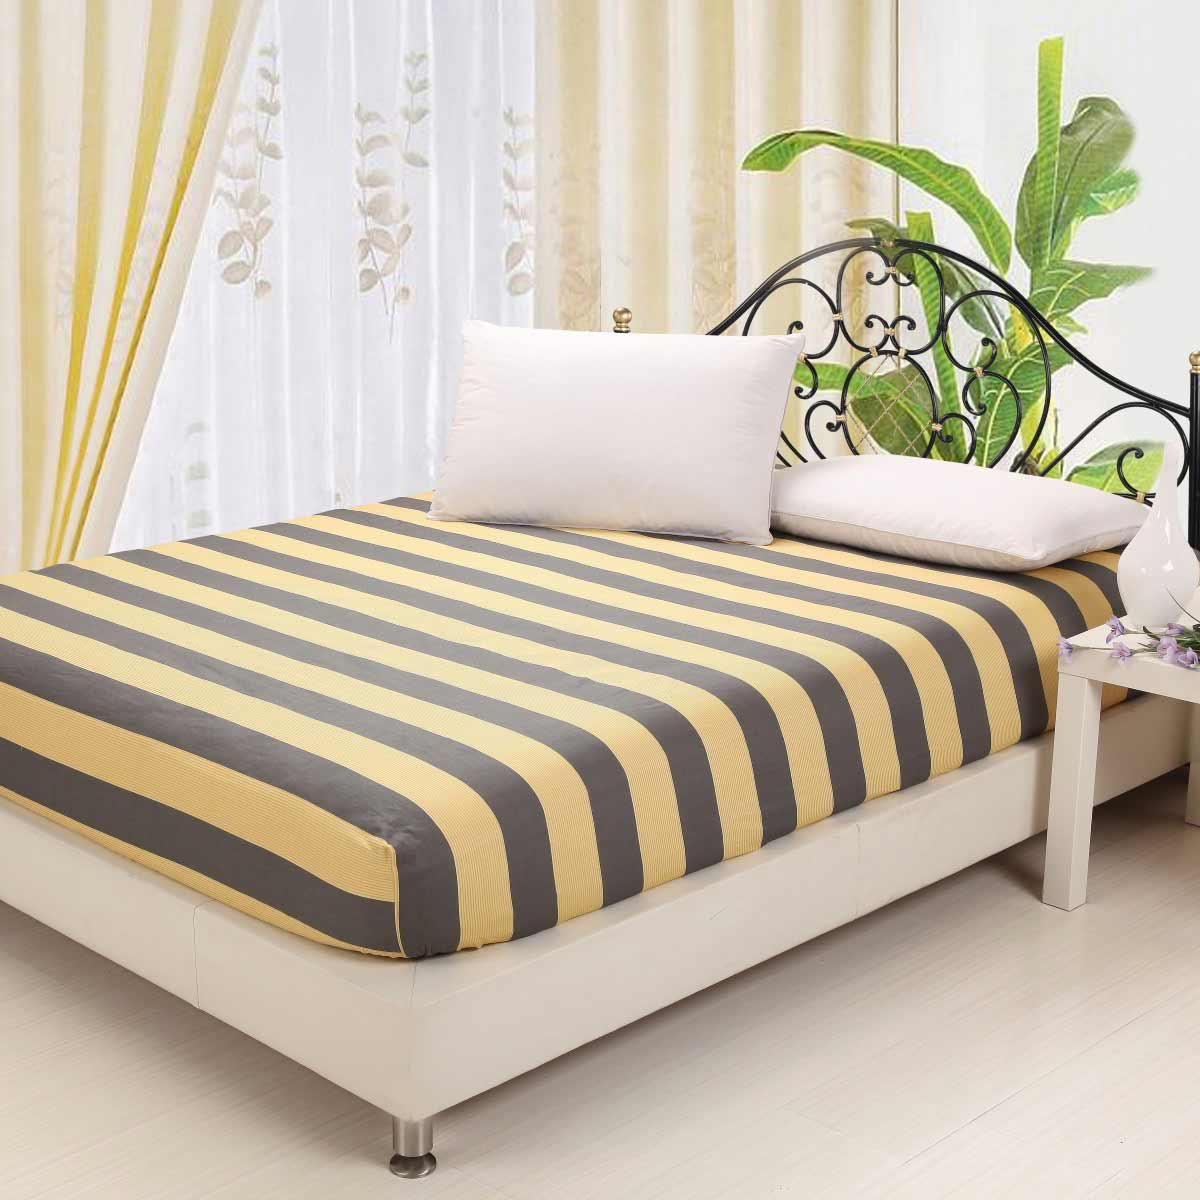 bed and mattress sets buying tips. Black Bedroom Furniture Sets. Home Design Ideas